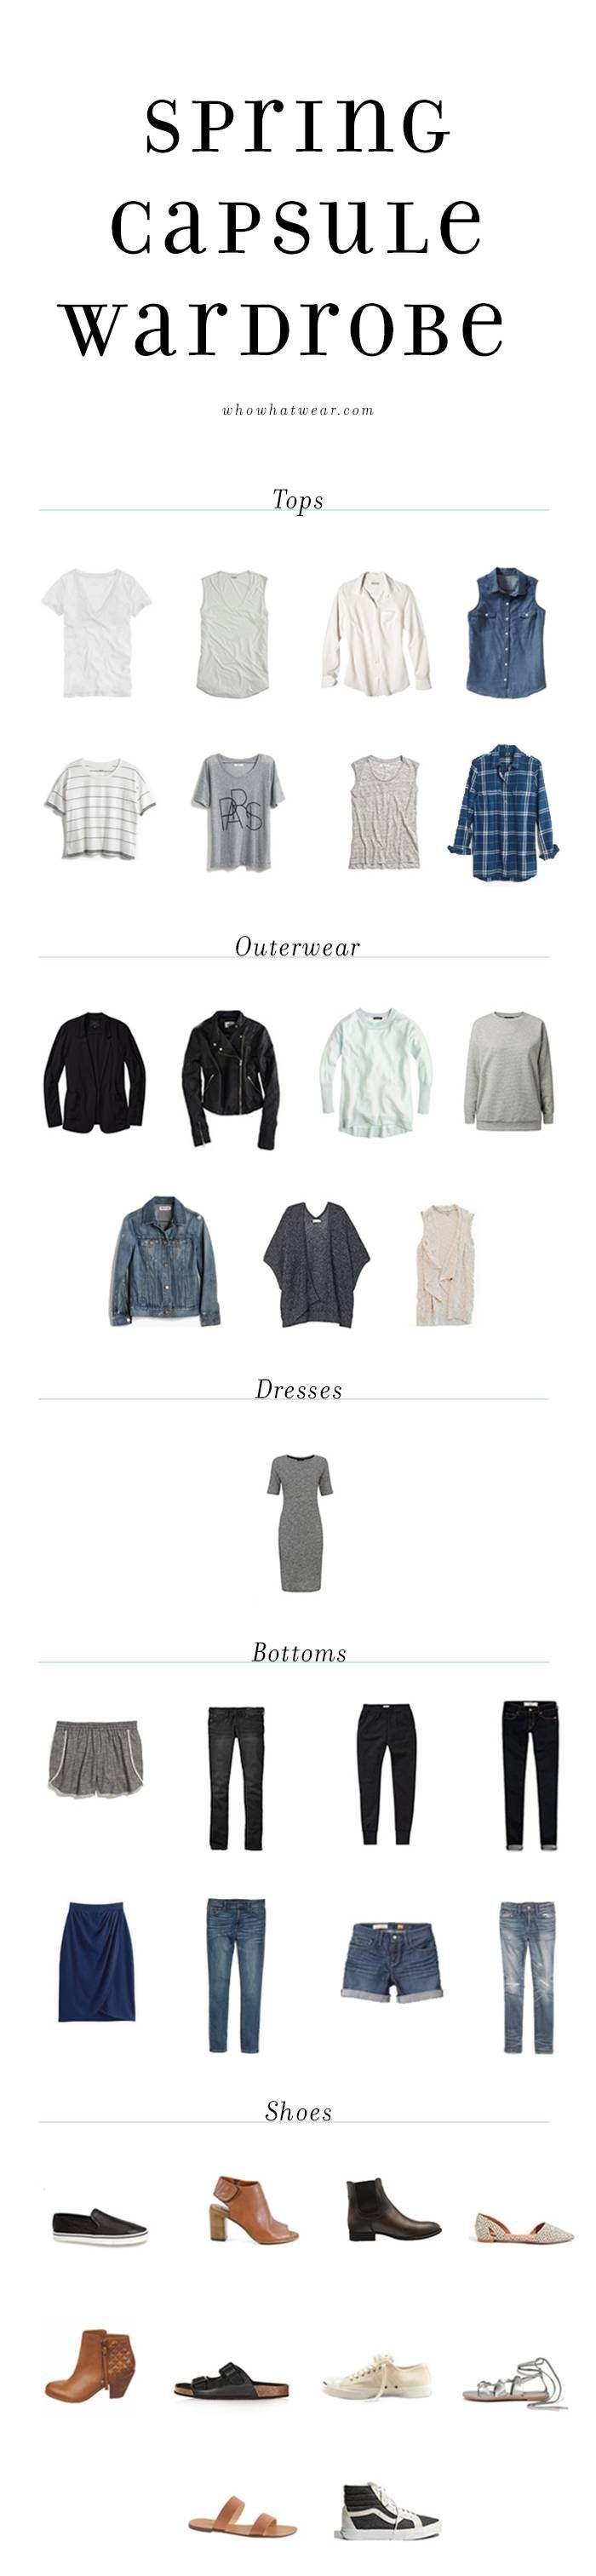 96acafabbe0e5 The Capsule Wardrobe  How to Reduce Your Closet to 37 Pieces